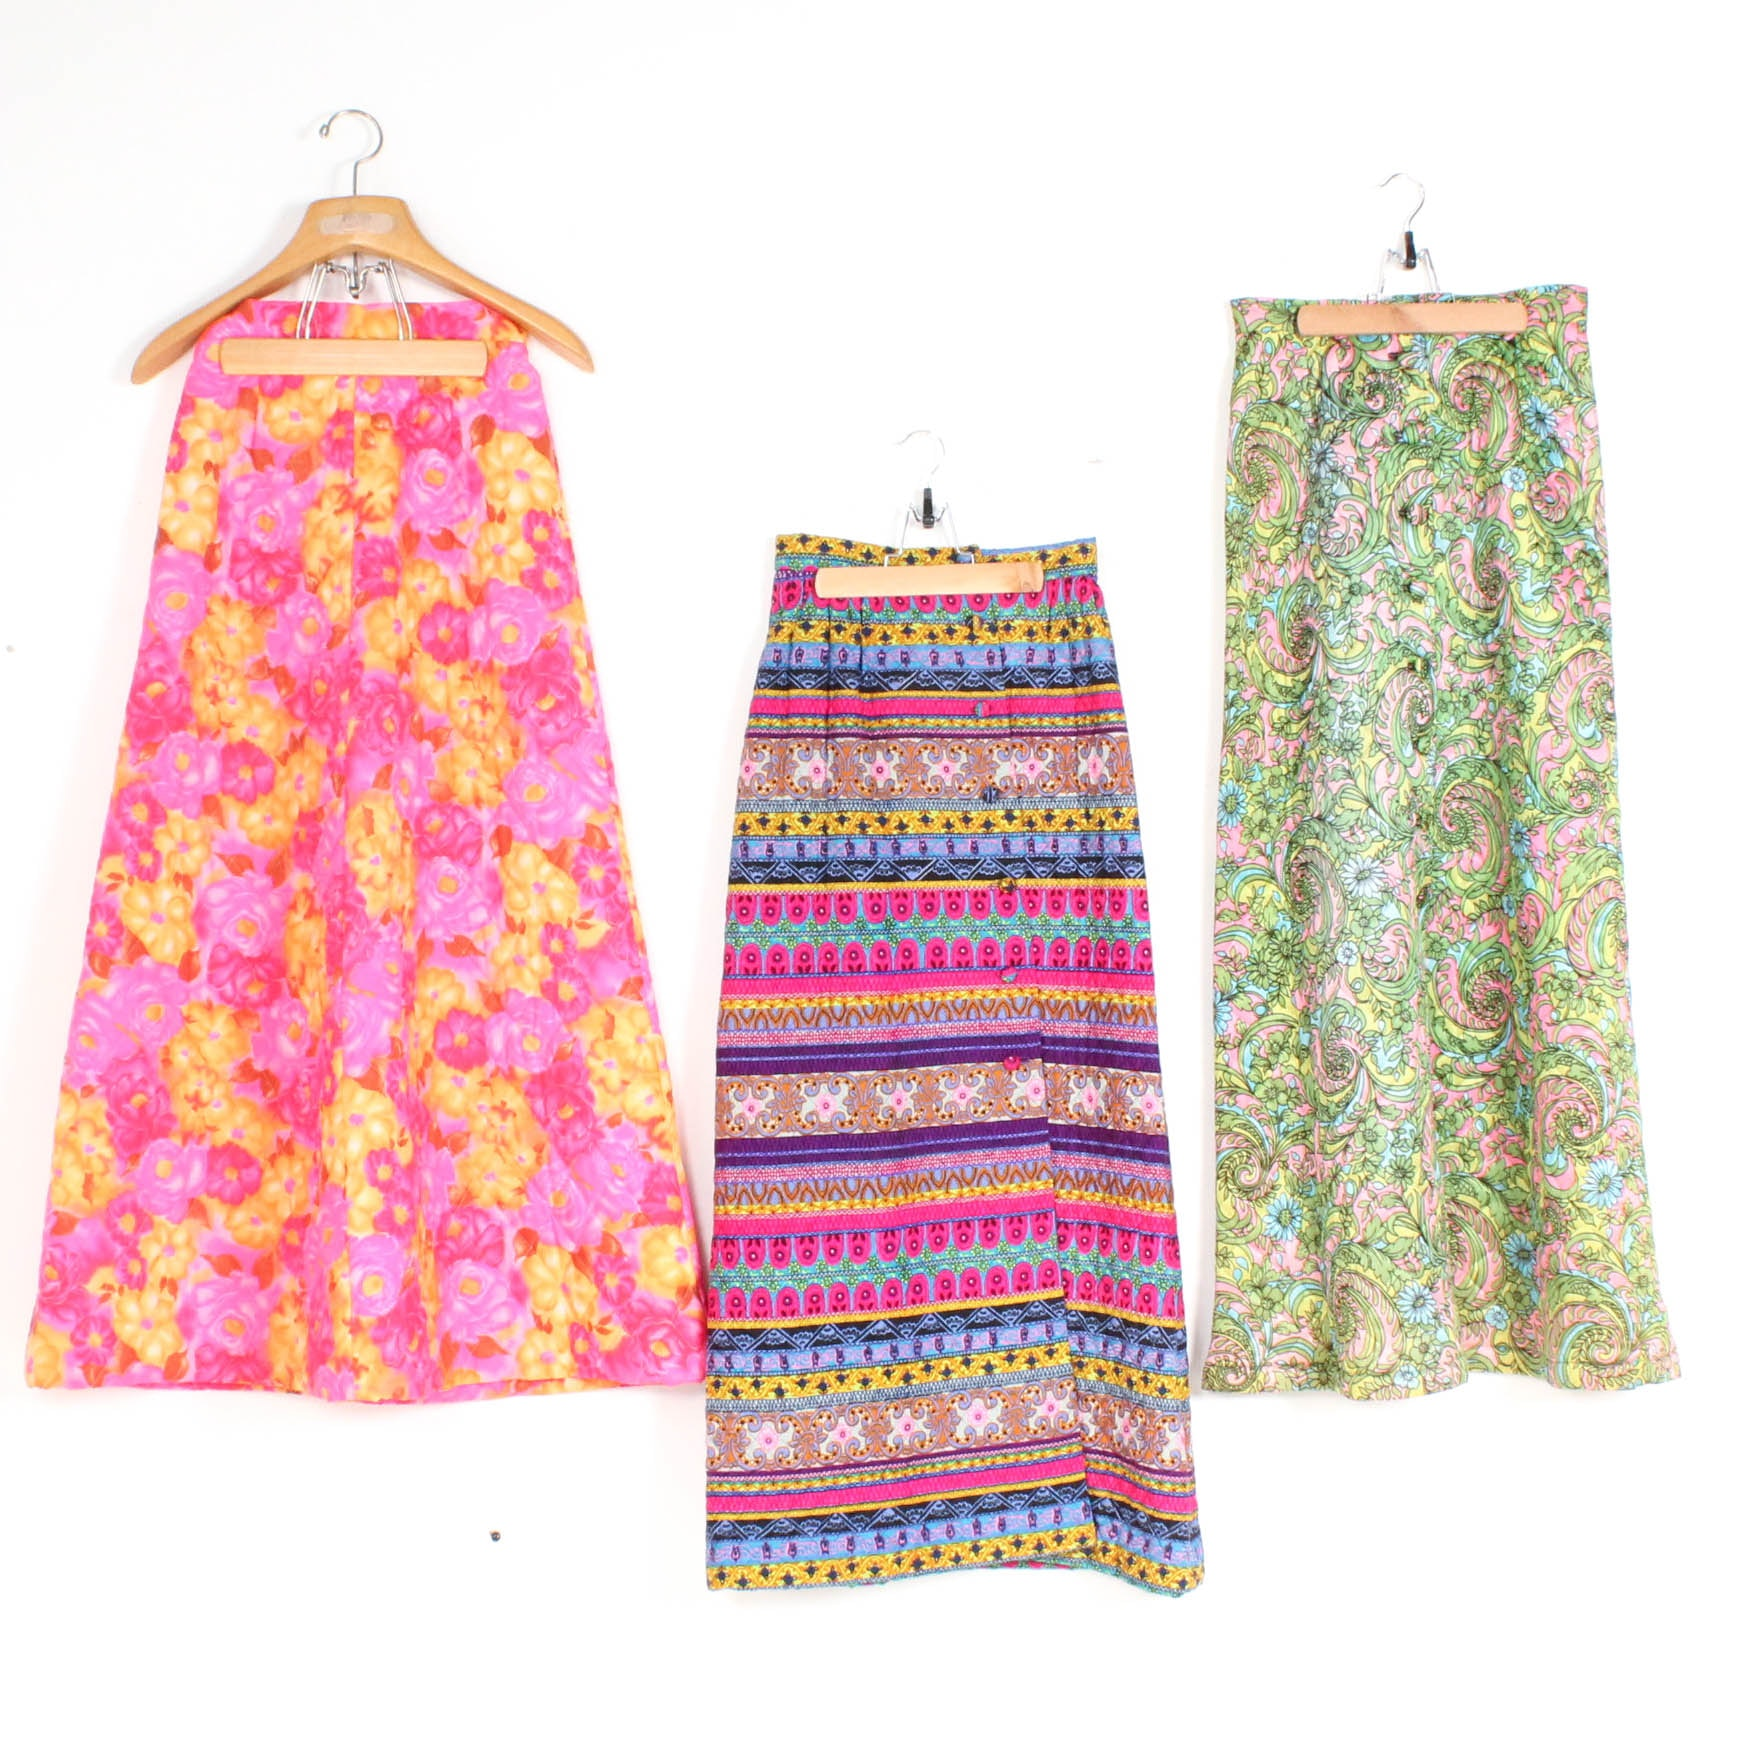 Vintage Colorful Quilted Maxi Skirts Including Alex Coleman